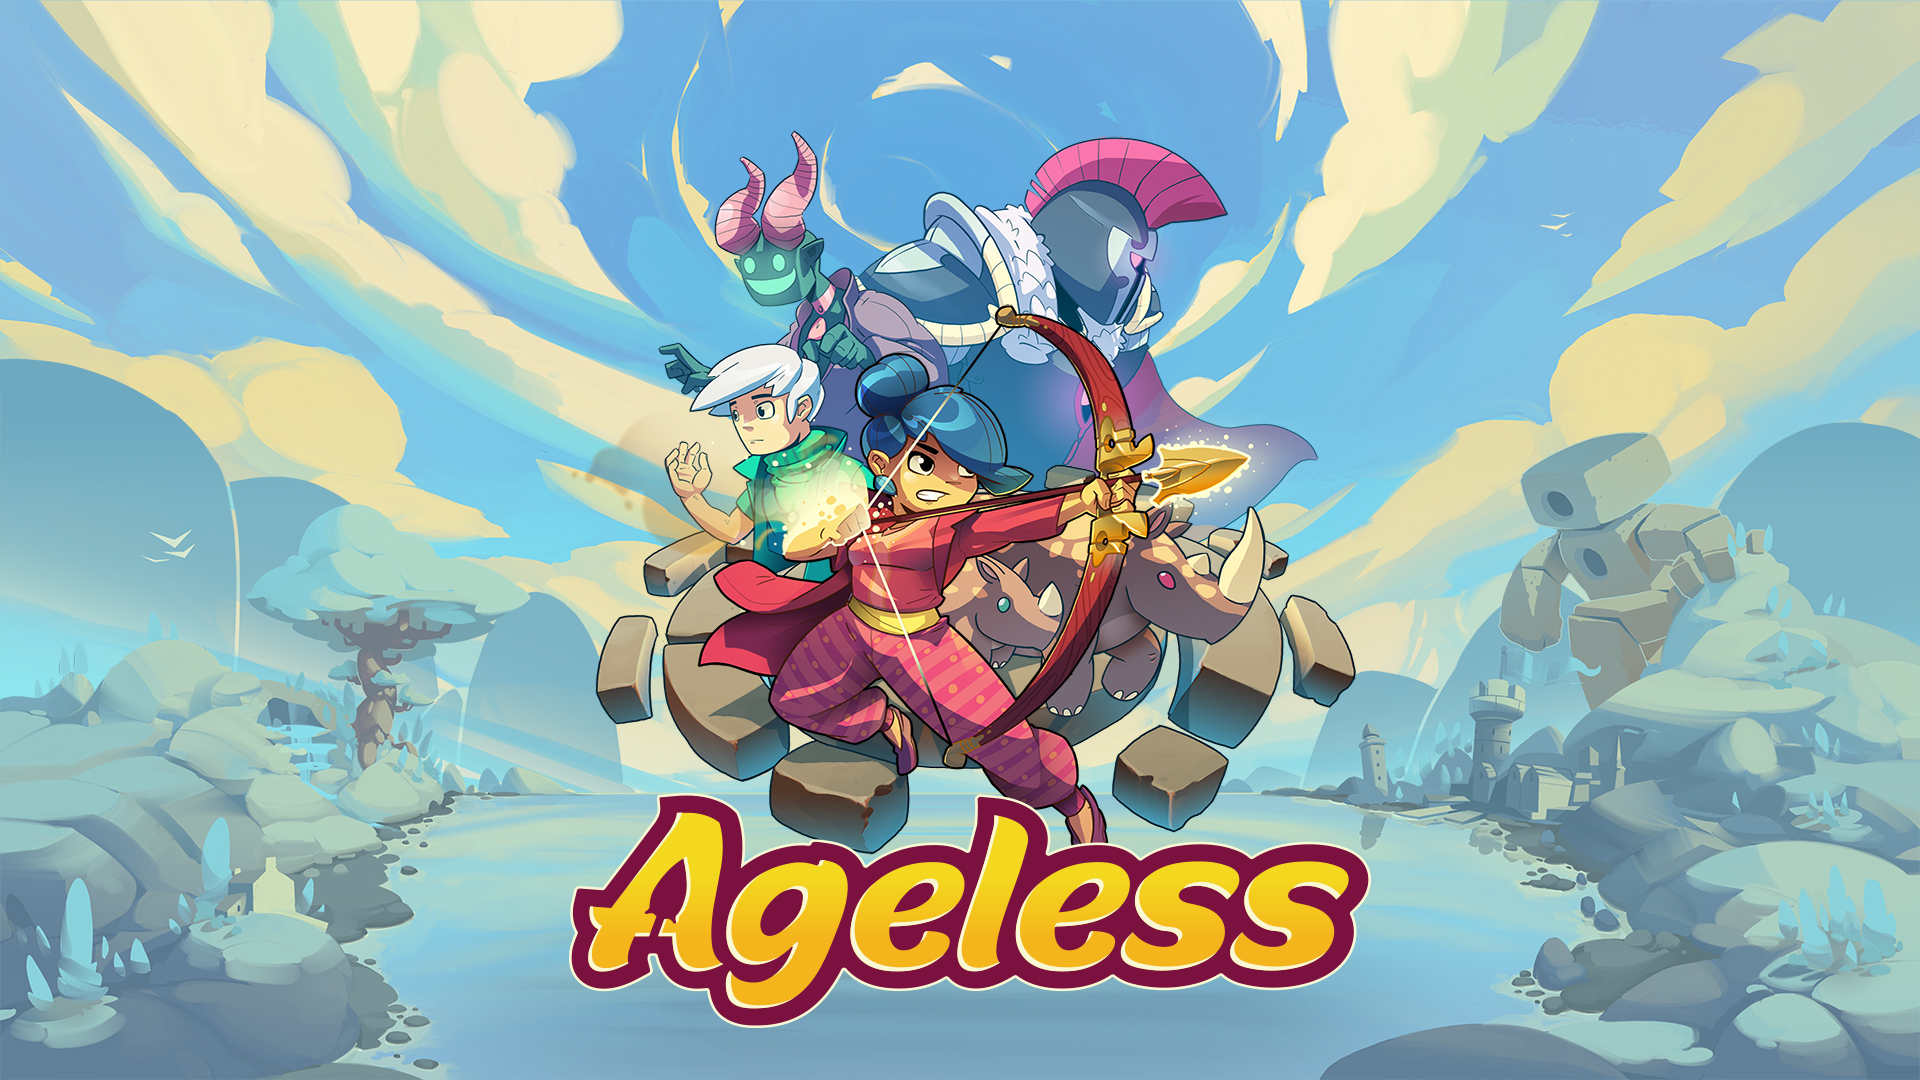 Introducing: Ageless